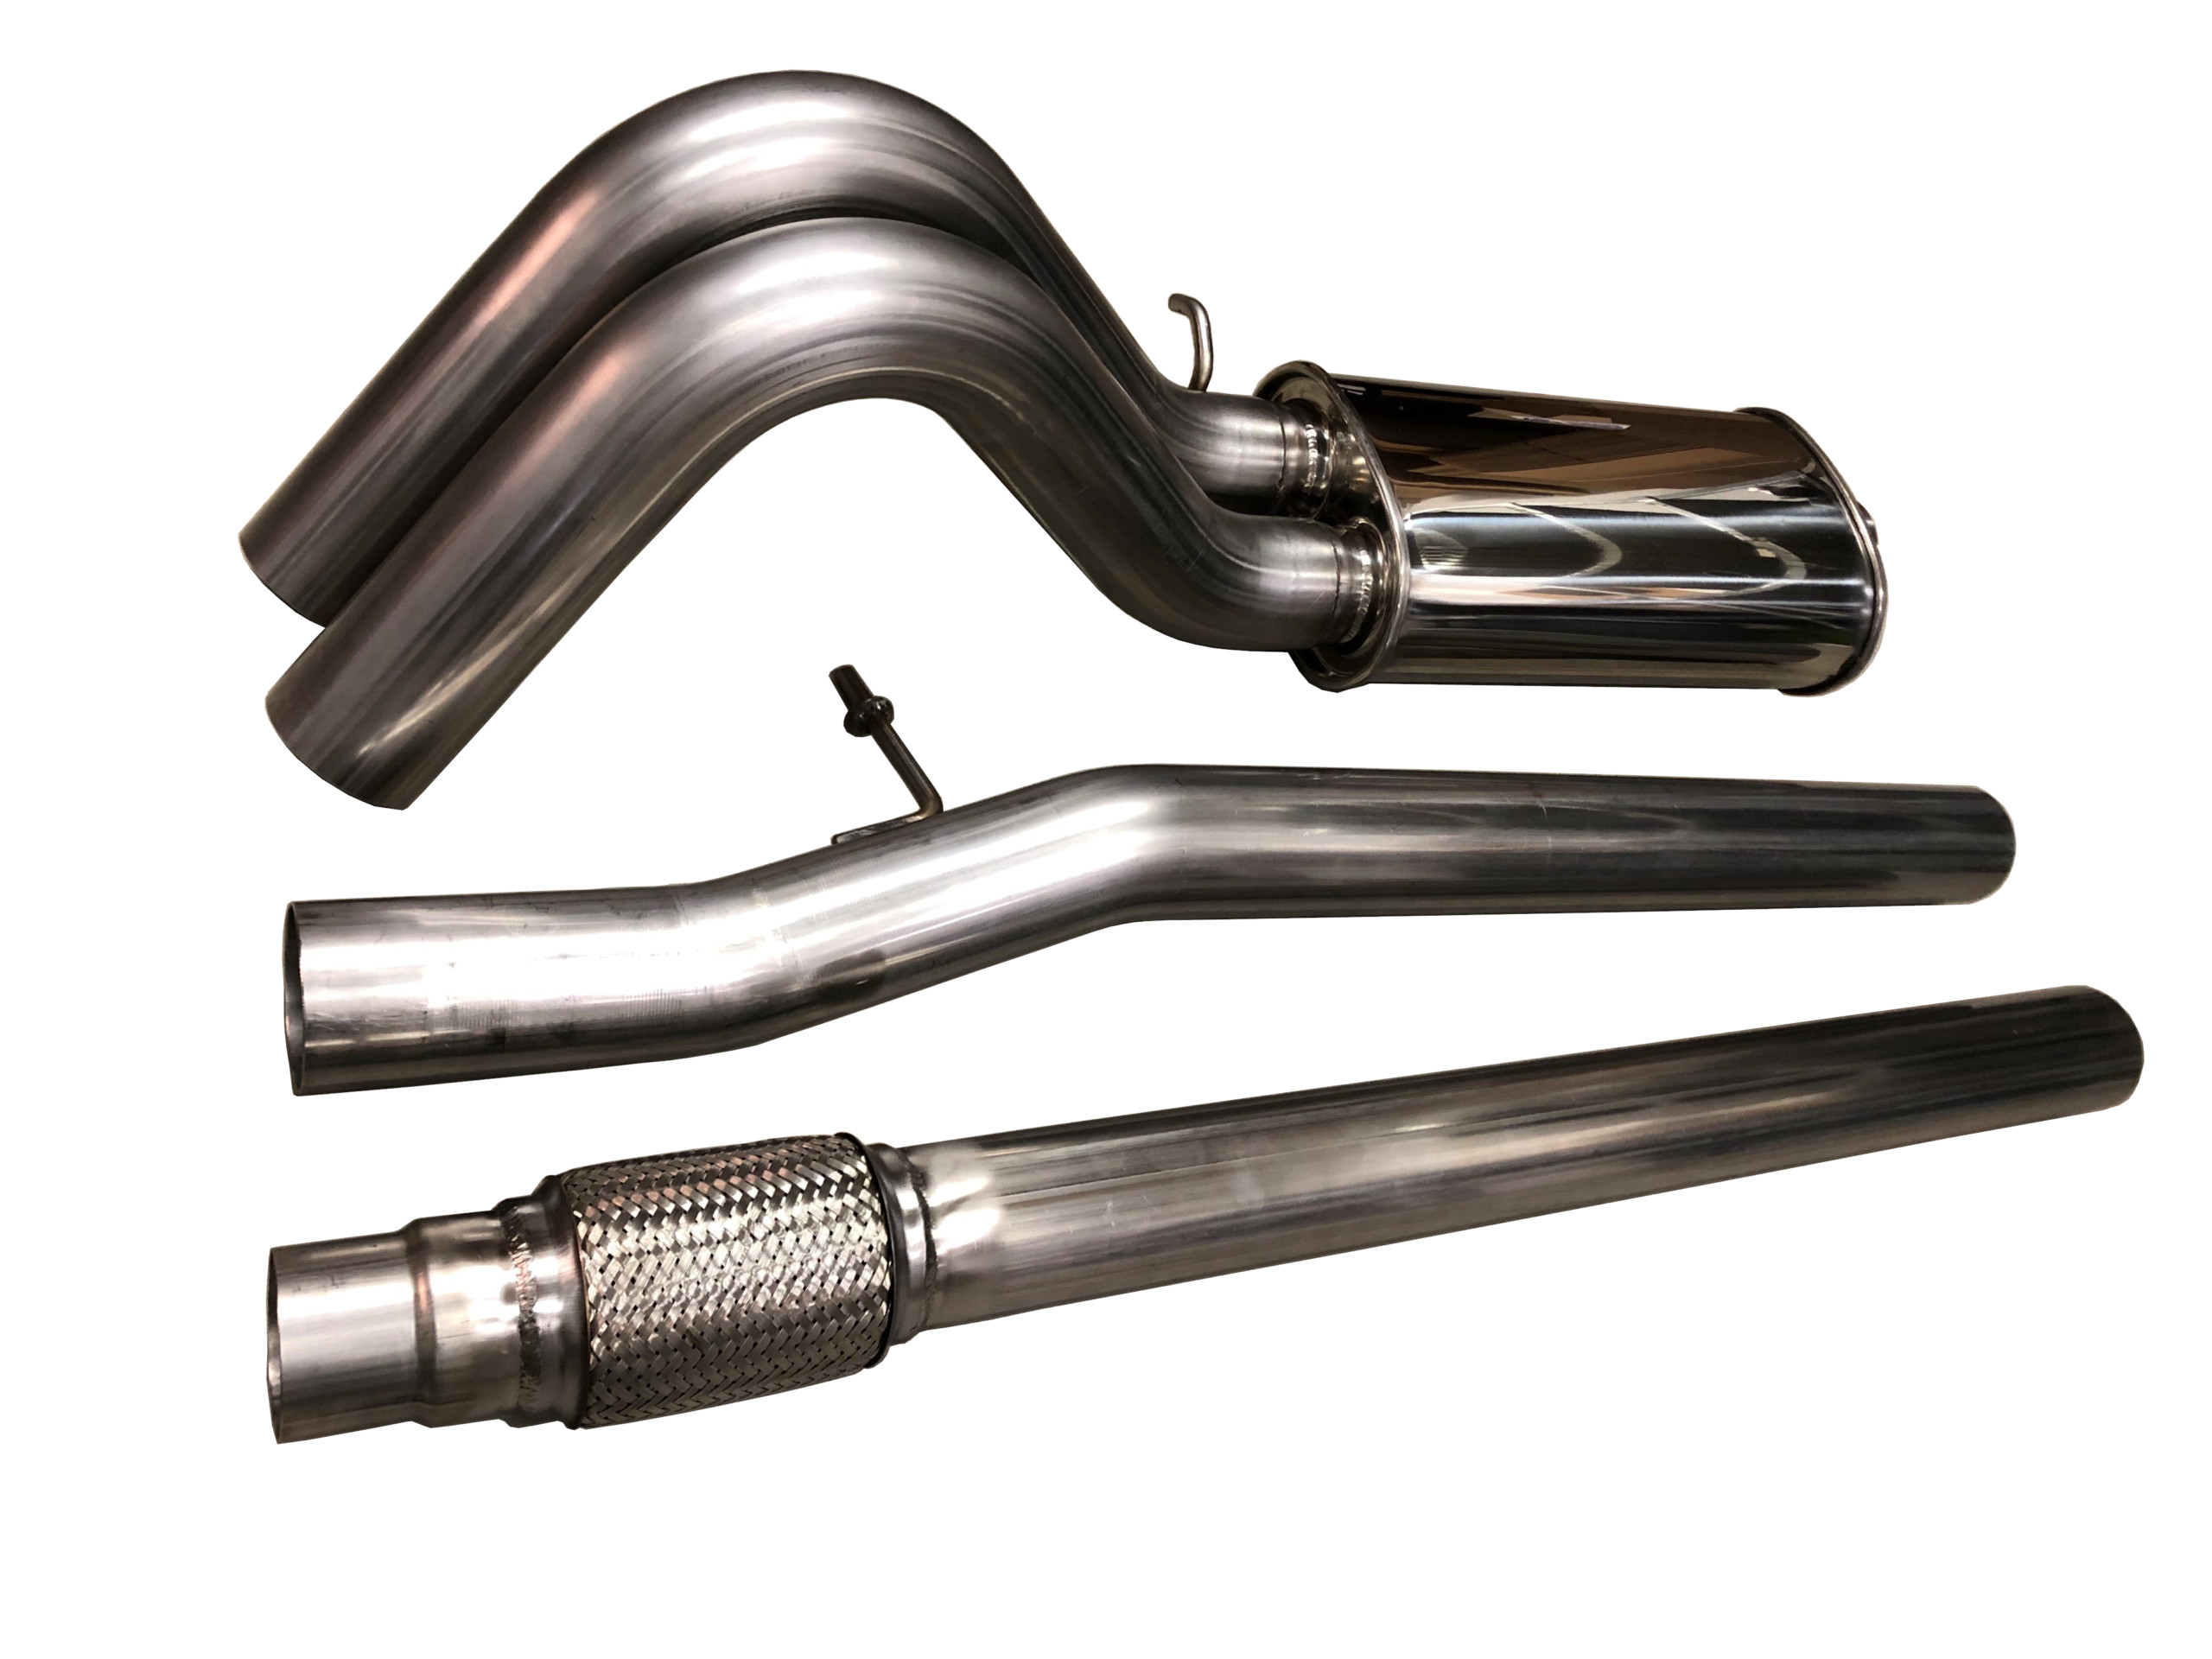 2019 ford ranger 2 3l eb spd performance offroad dual exit axle dump exhaust cb23r1920 adf